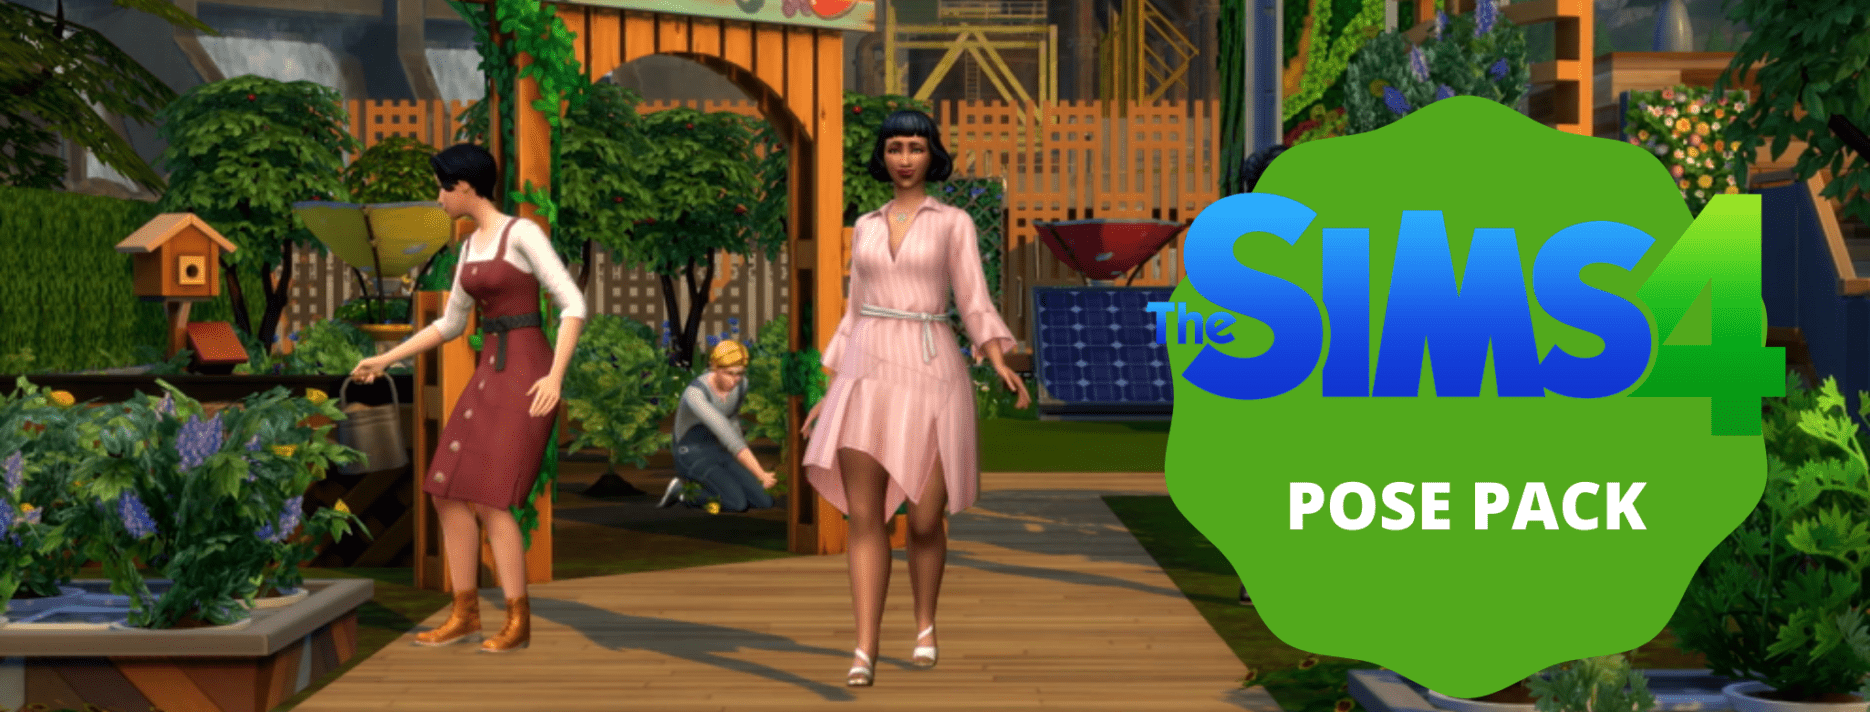 sims 4 POSE PACK header